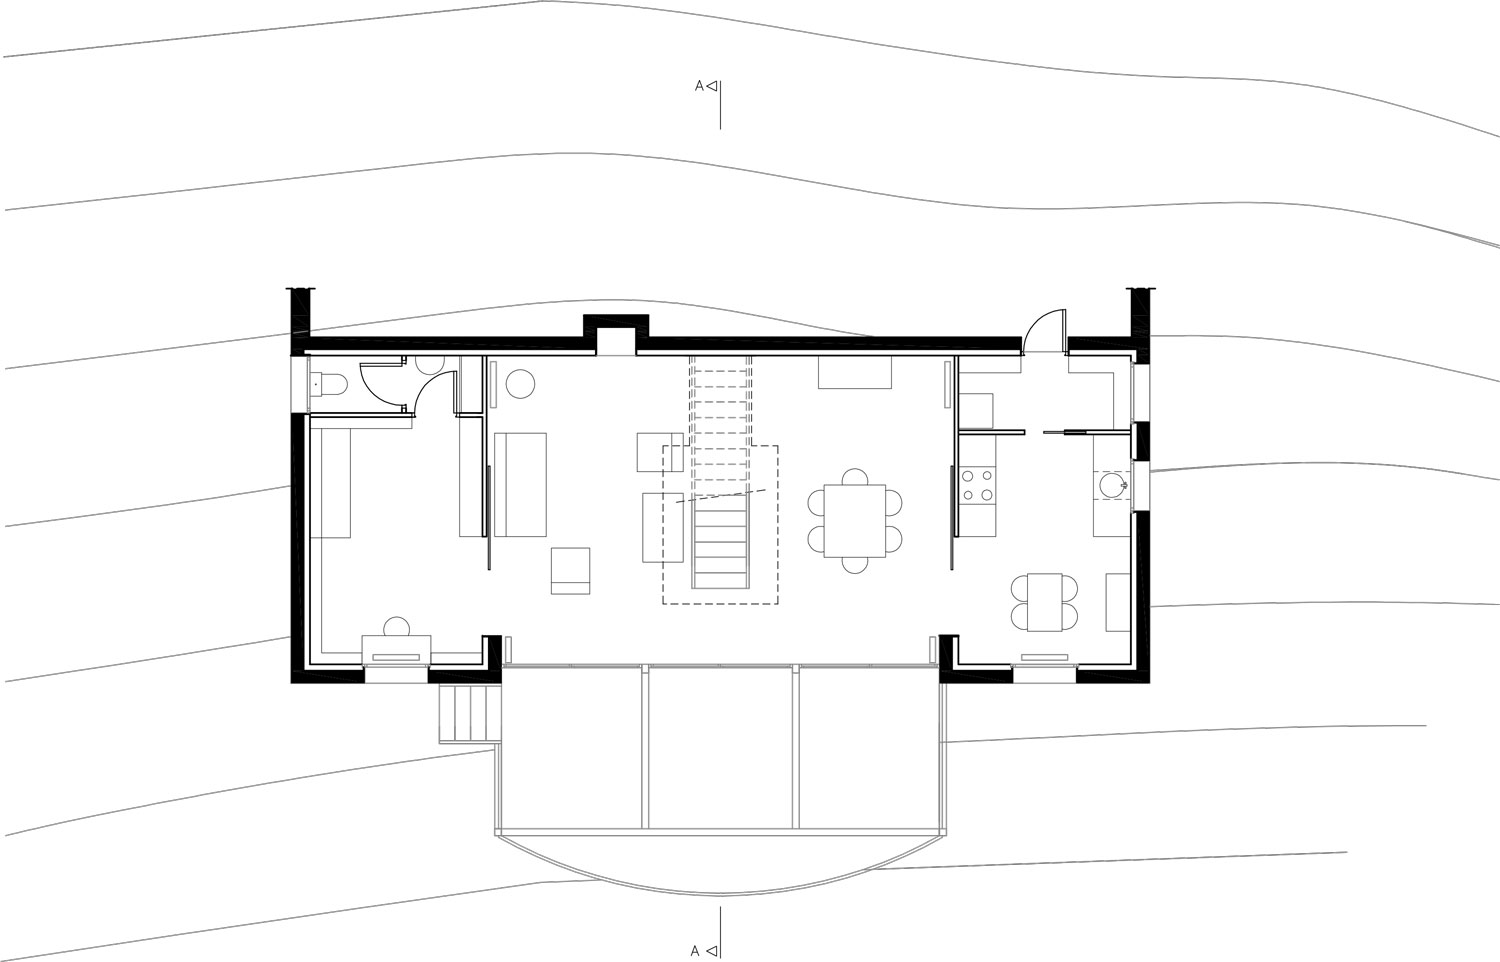 Plan du rez de chausse de la maison with plan maison for Plan architecte maison